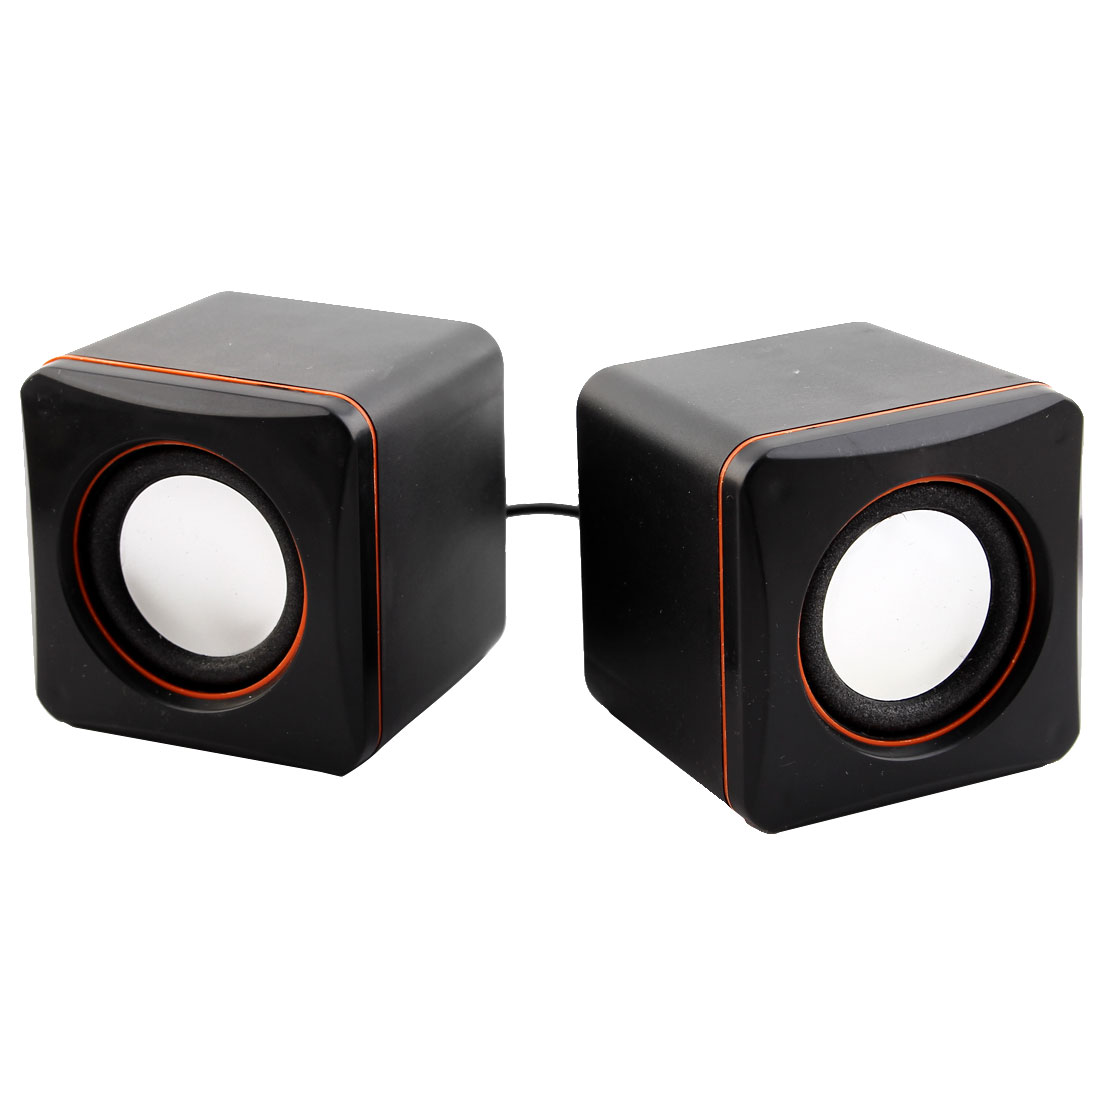 Pair Black Orange Plastic Shell USB 2.0 3.5mm Stereo Plug Computer Laptop MP3 MP4 Mini Multimedia Speaker Sound Box